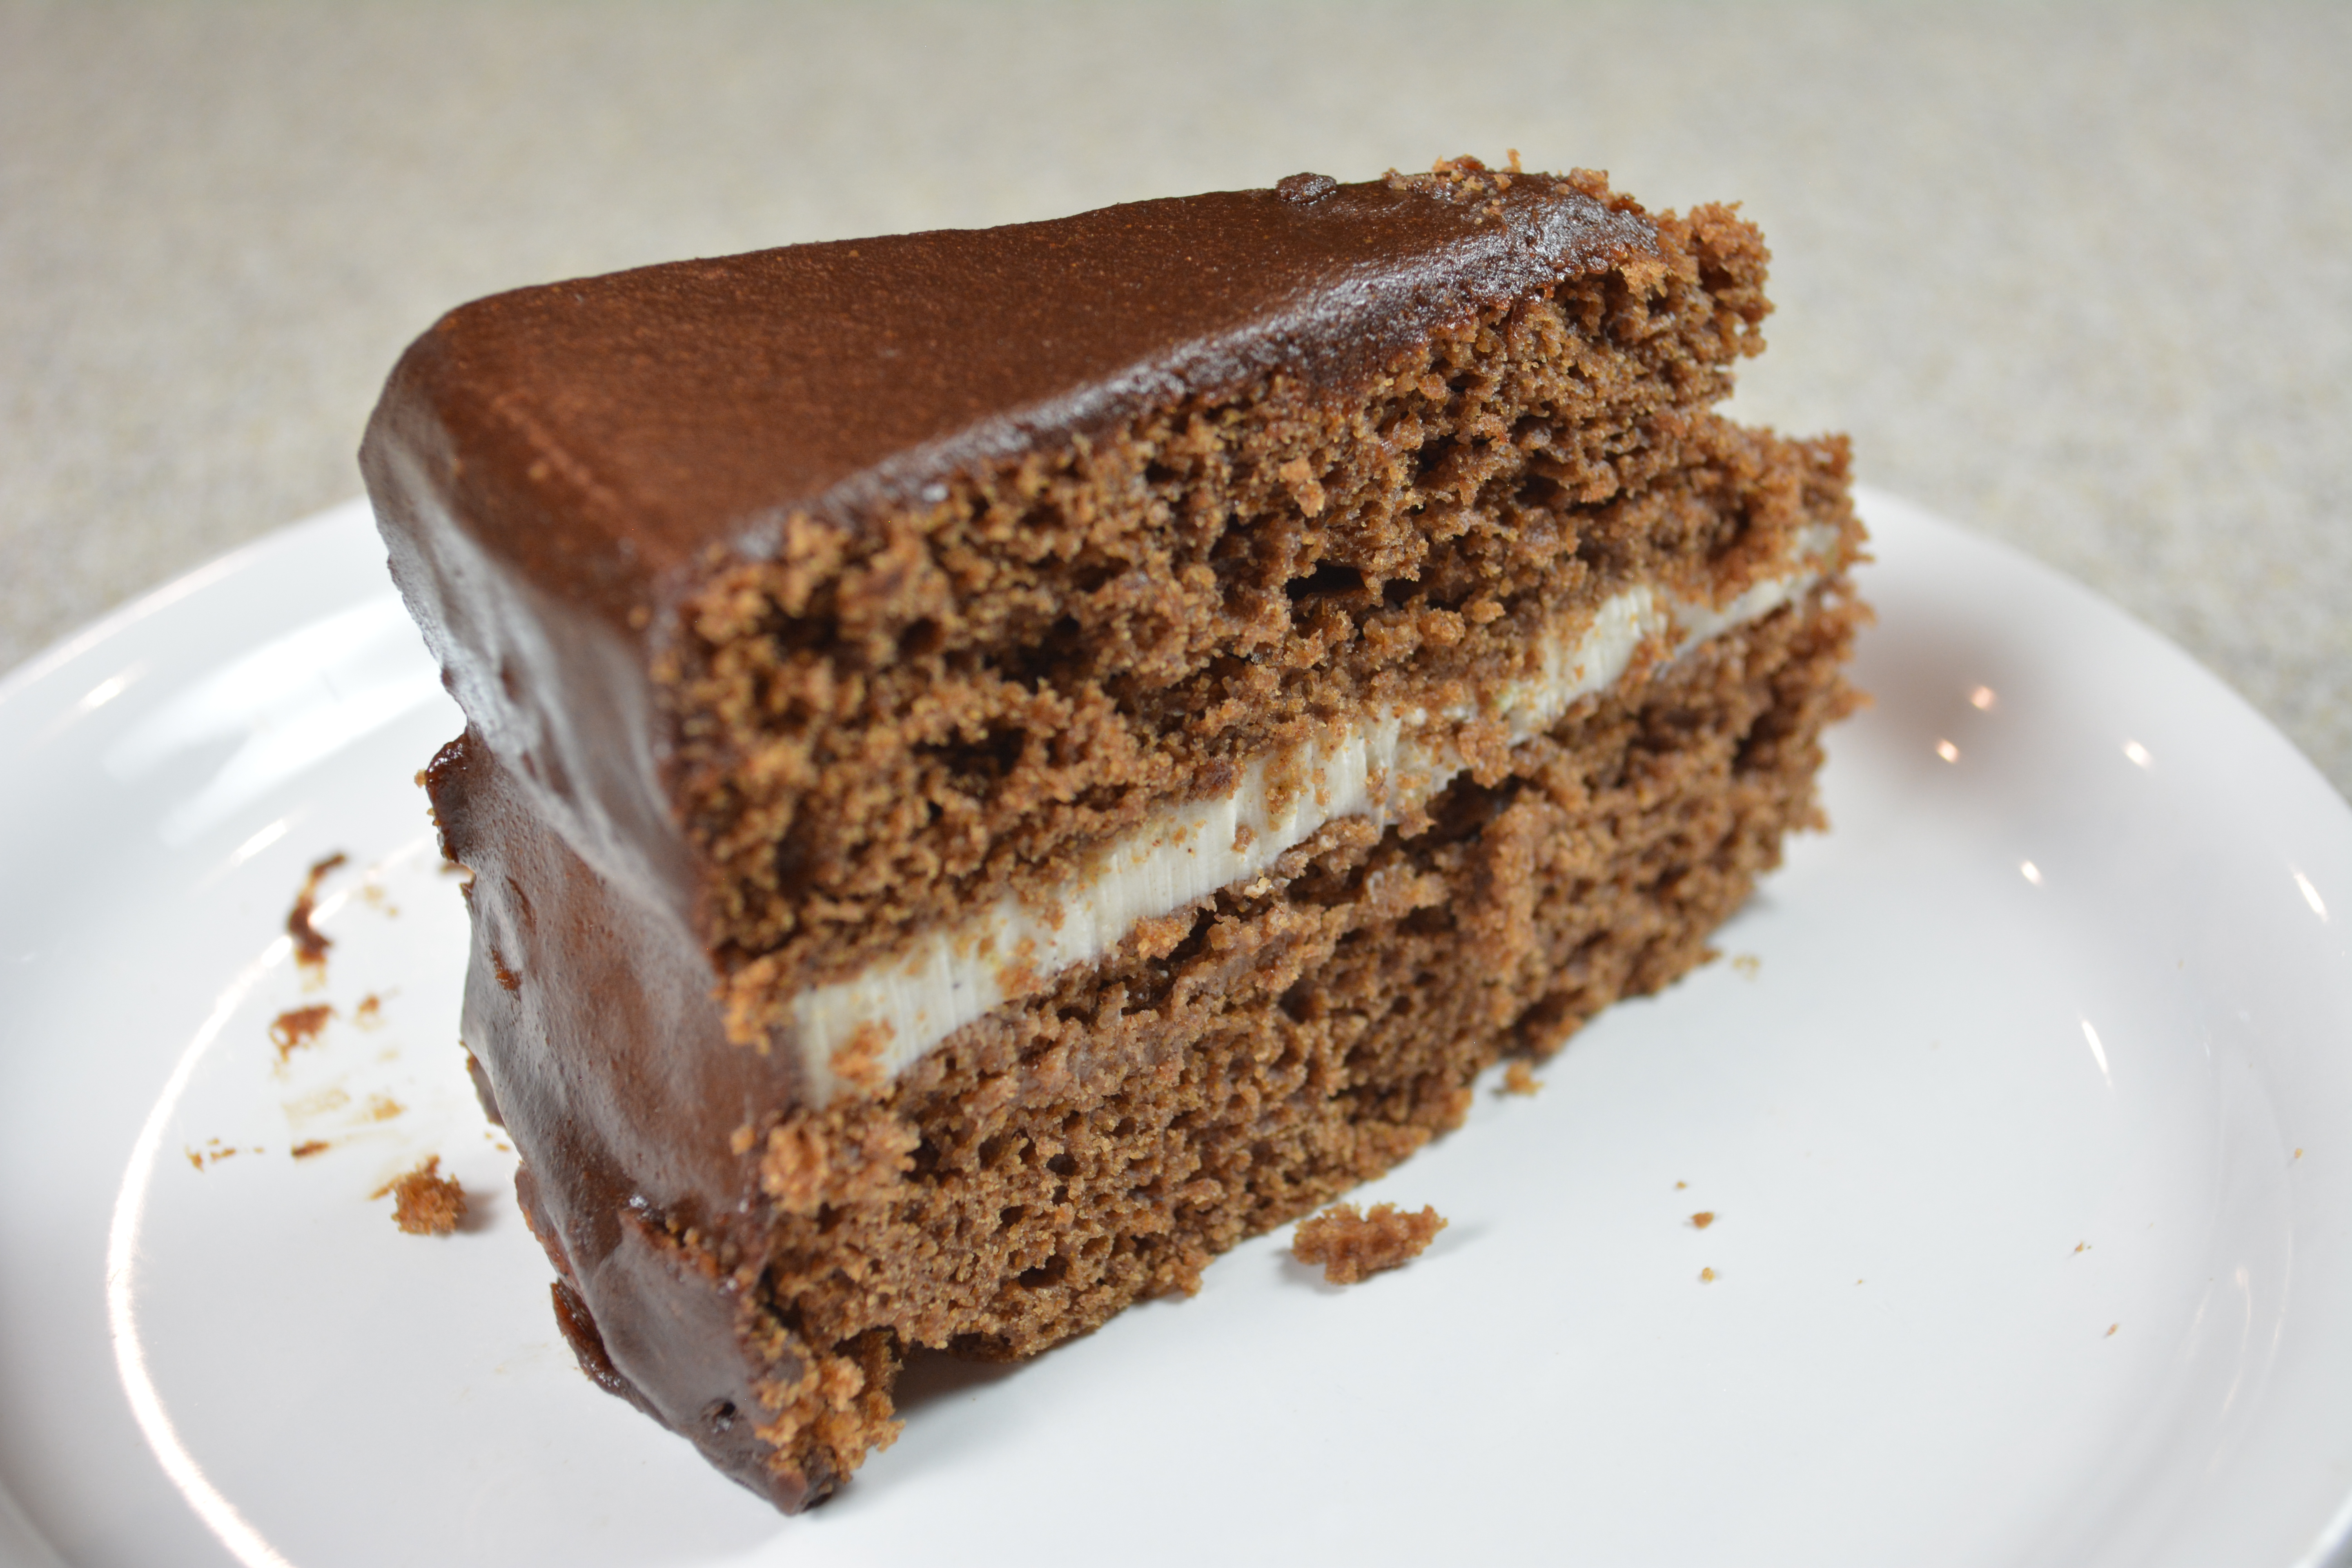 Chocolate Cake Using Chocolate Chips Instead Of Cocoa Powder